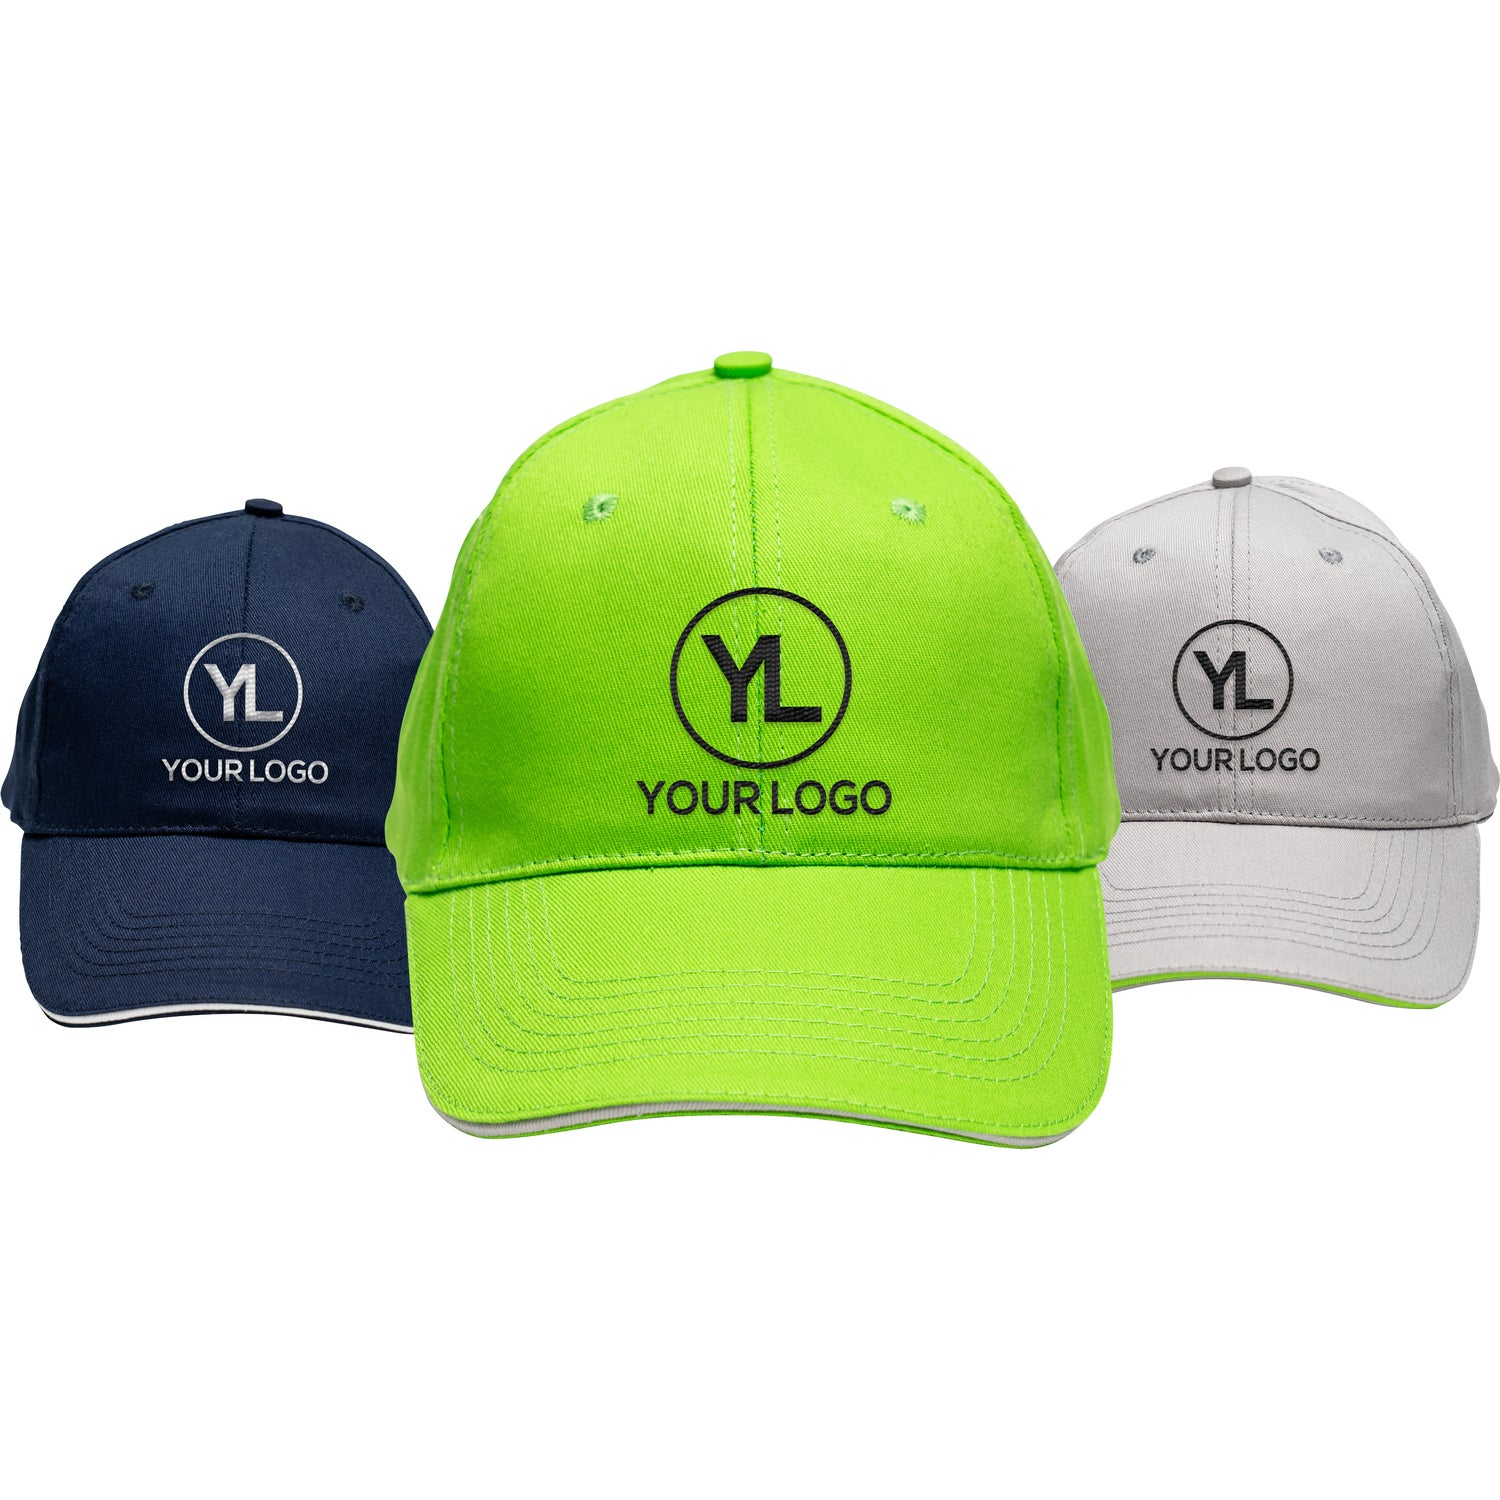 Polyester 6 Panel Structured Cap